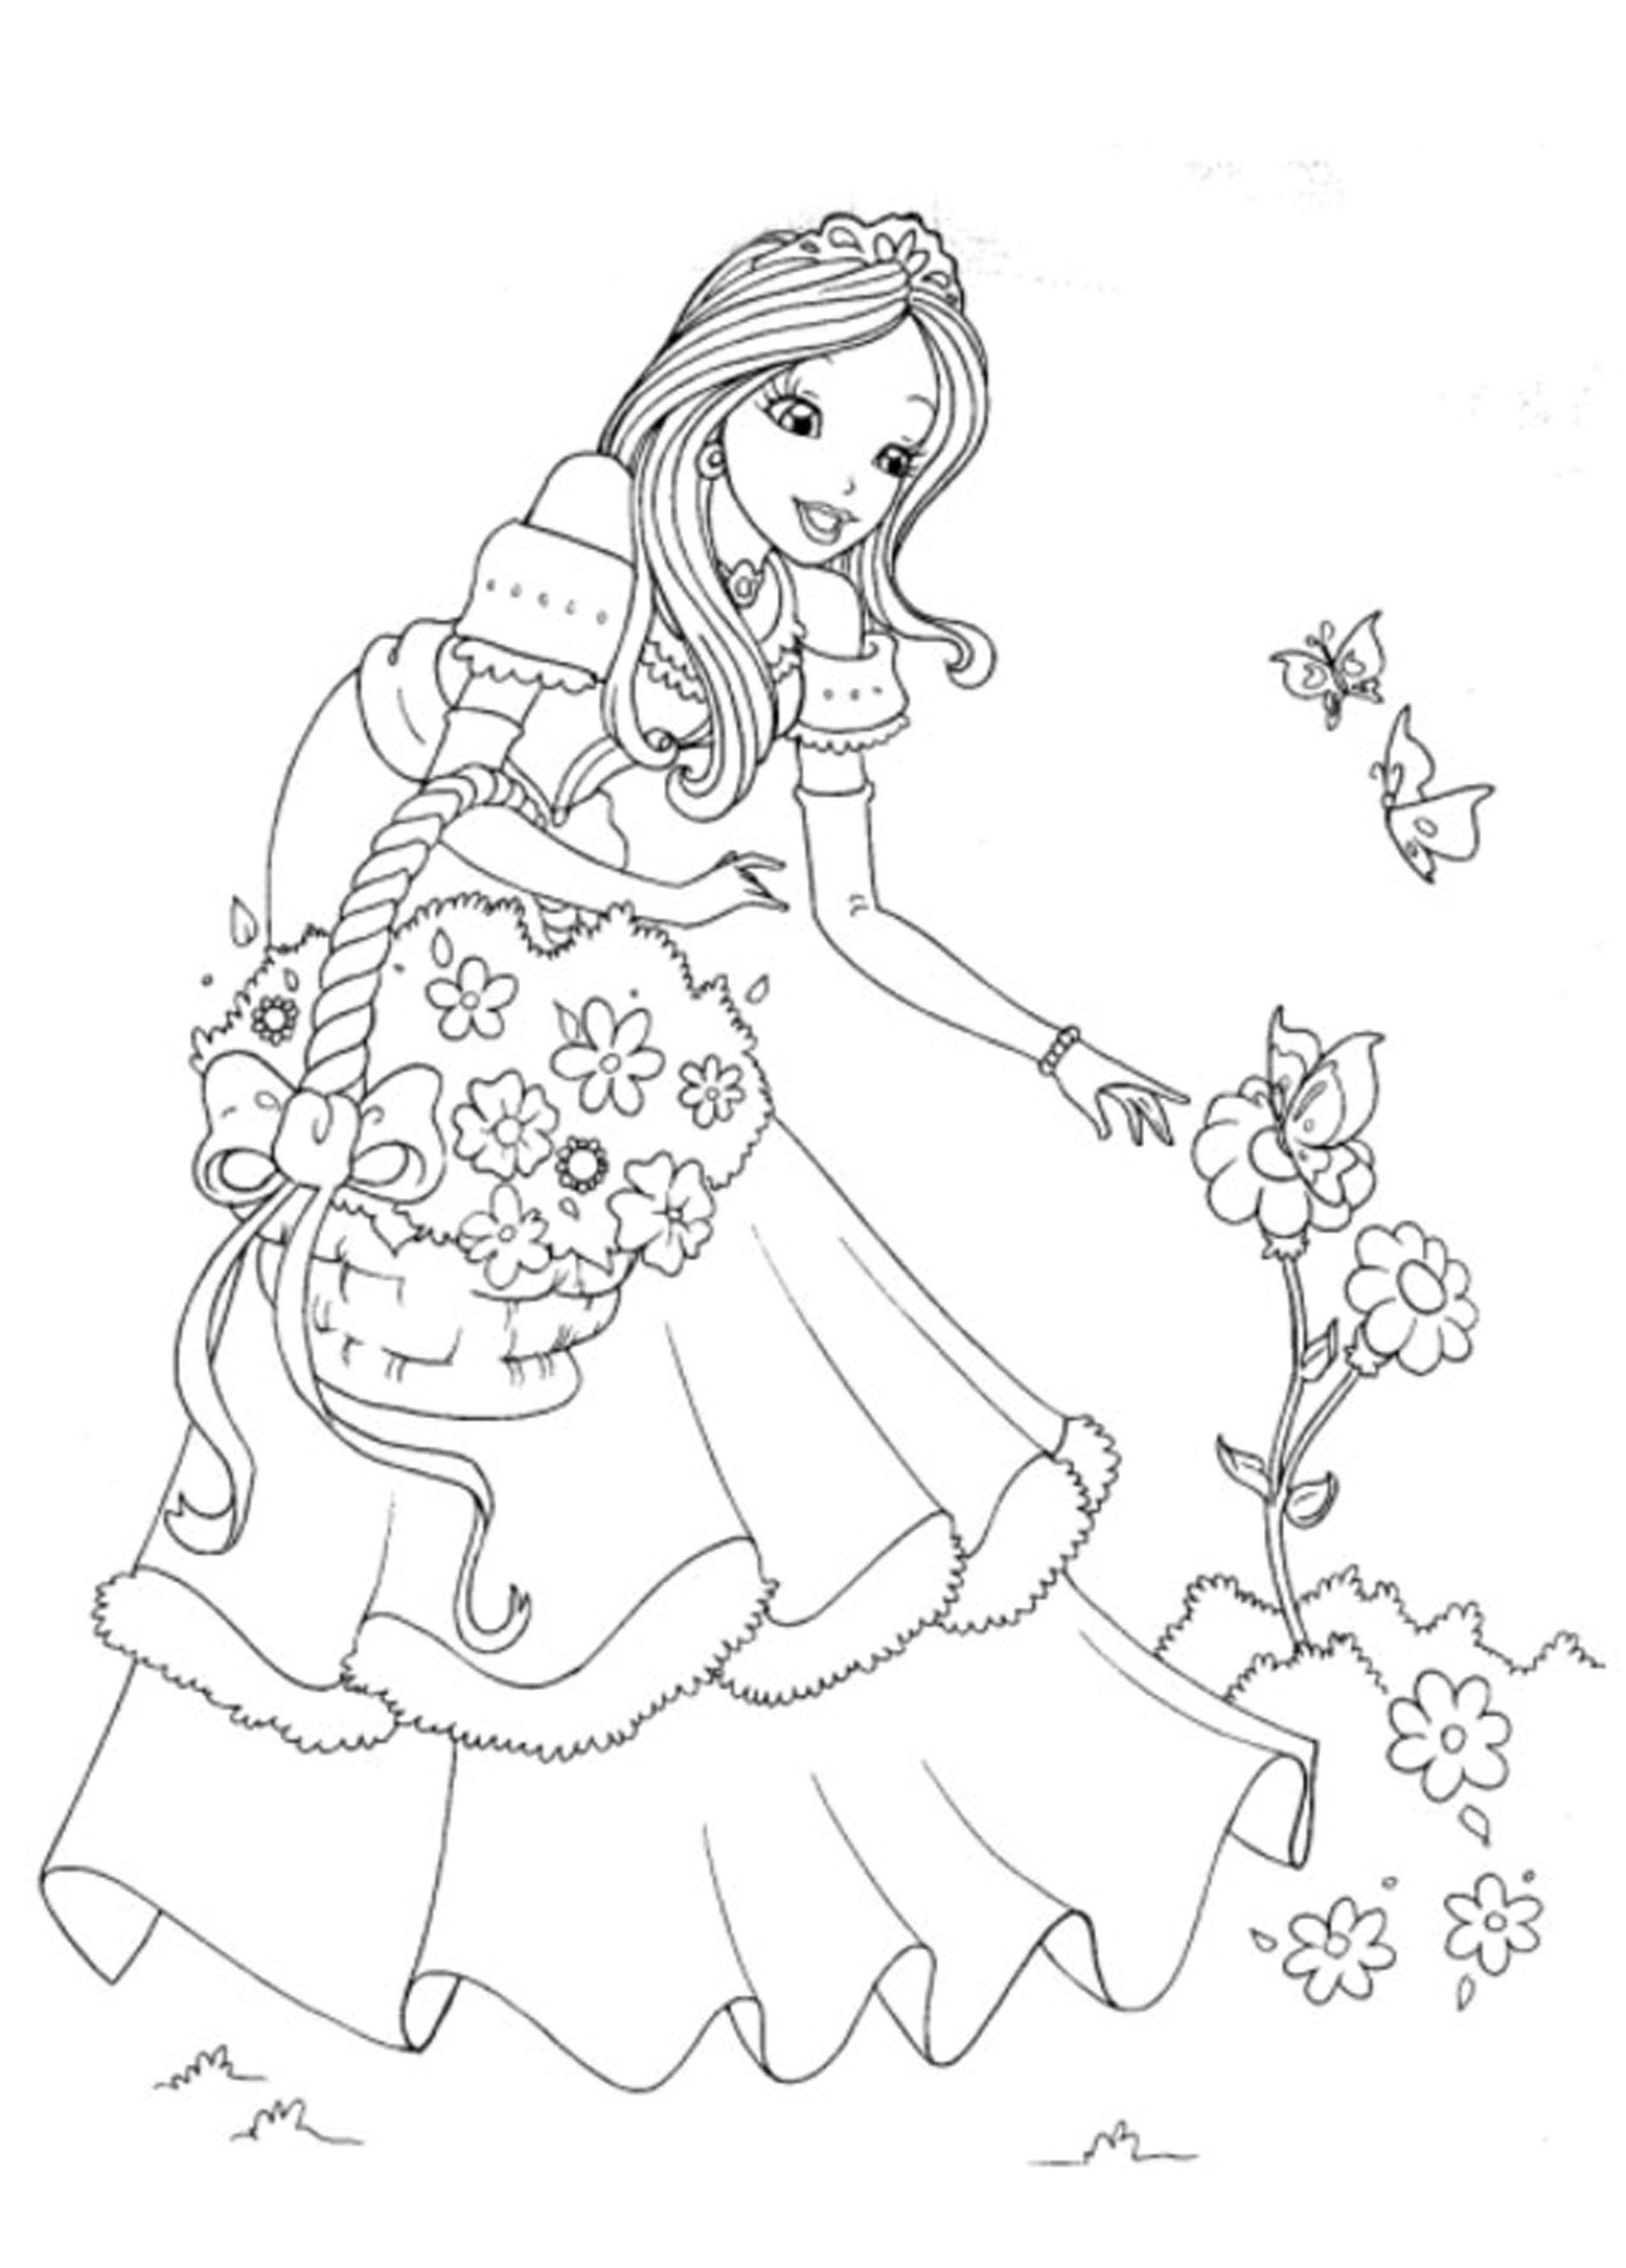 Non Disney Princess Coloring Pages Through The Thousand Pictures On The Net With Reg Disney Princess Coloring Pages Princess Coloring Princess Coloring Pages